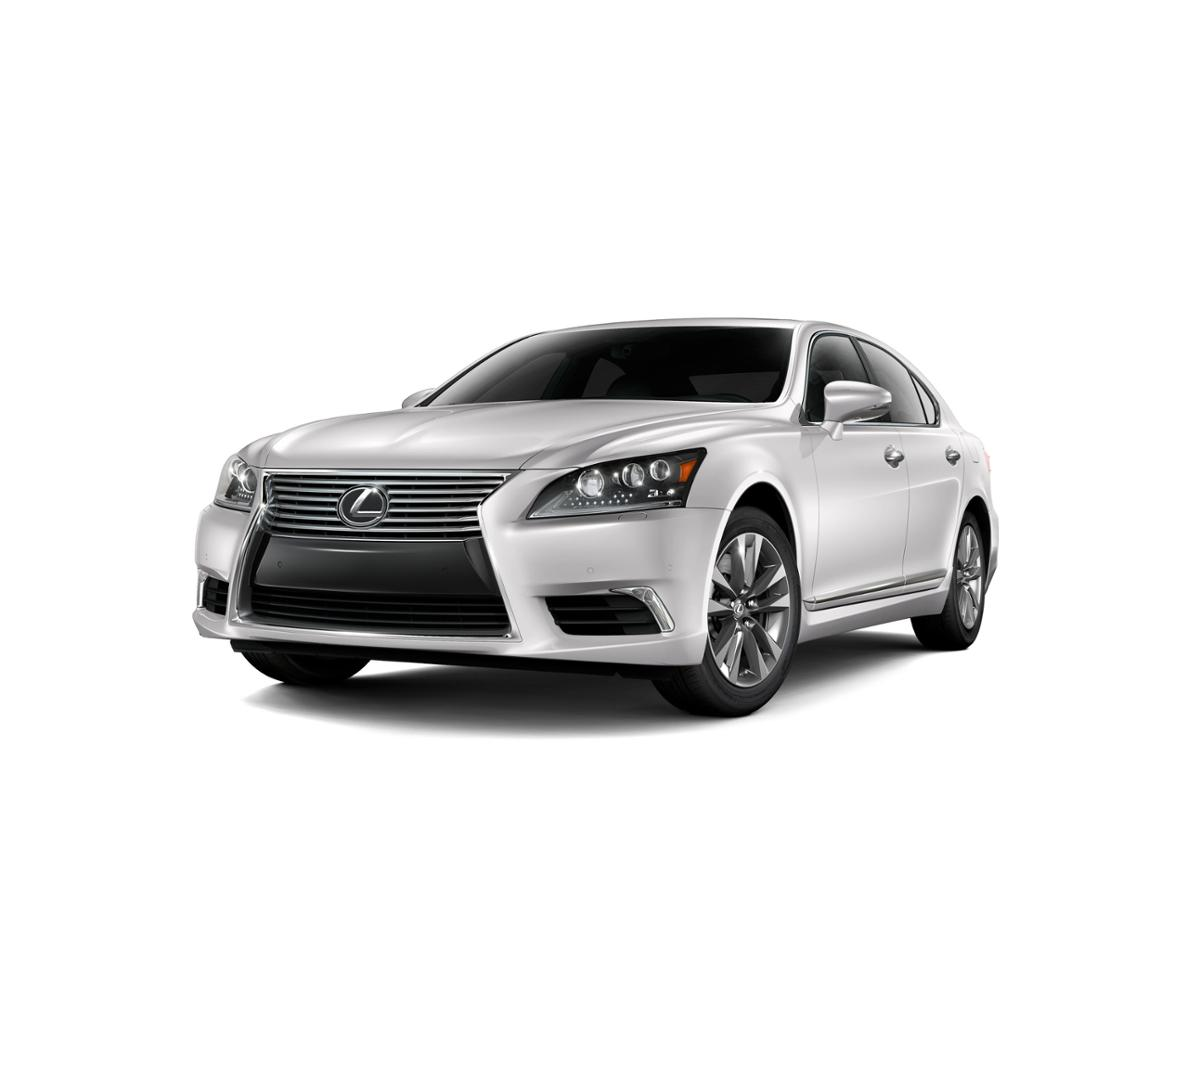 2013 Lexus Ls460 For Sale: Certified Eminent White Pearl 2017 Lexus LS 460 RWD For